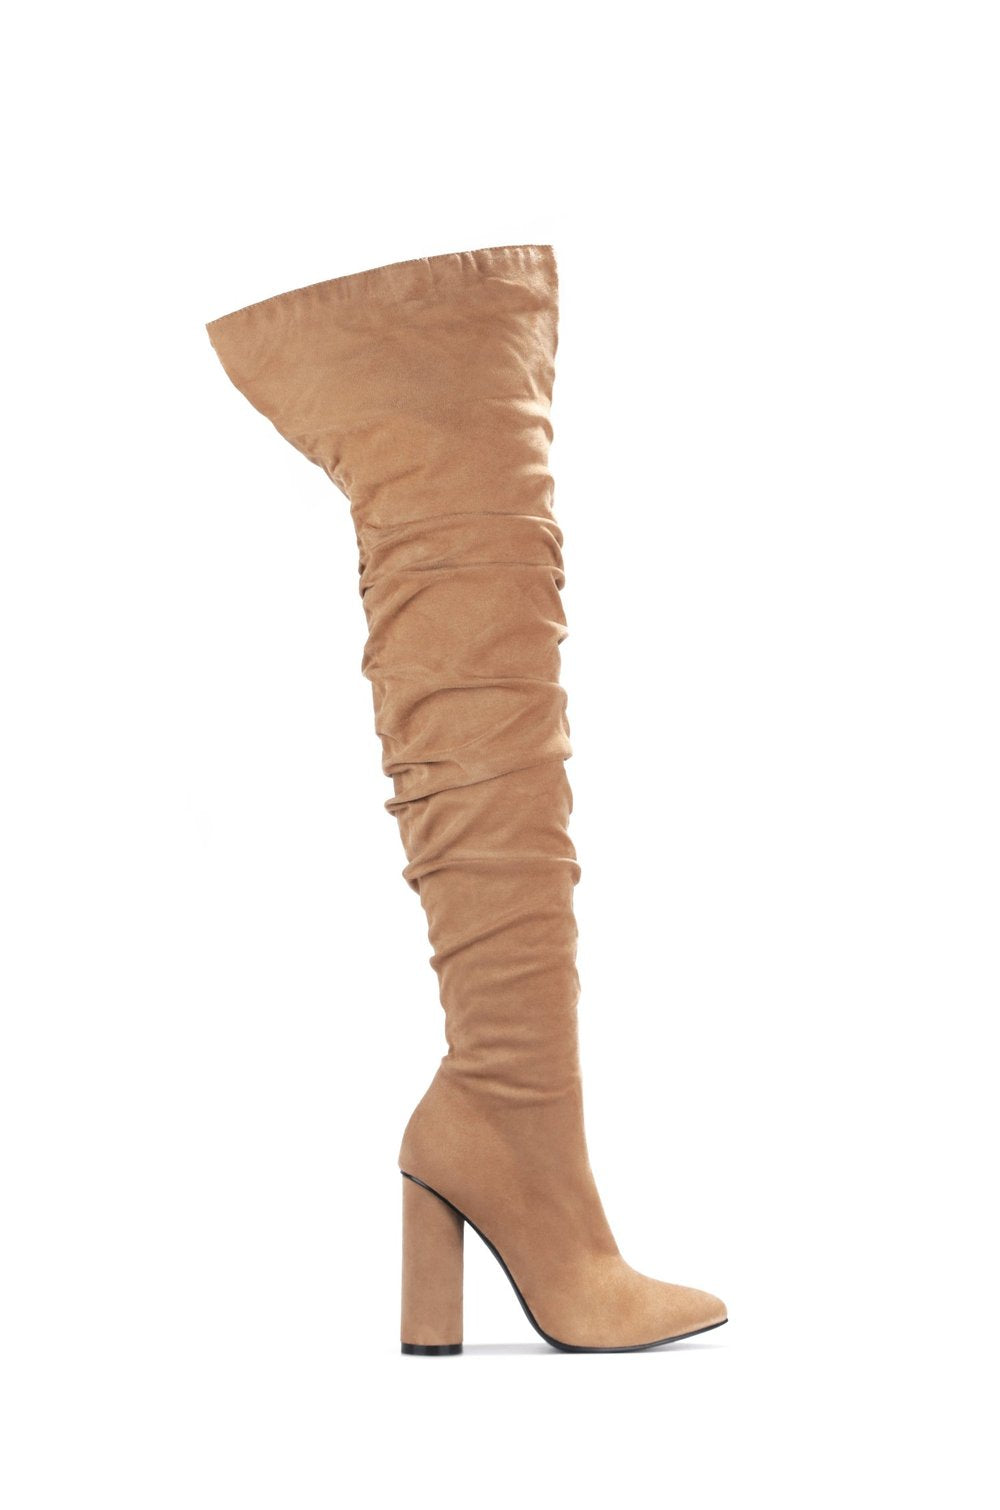 Cape Robbin Adore You Taupe Suede Thigh High Heel